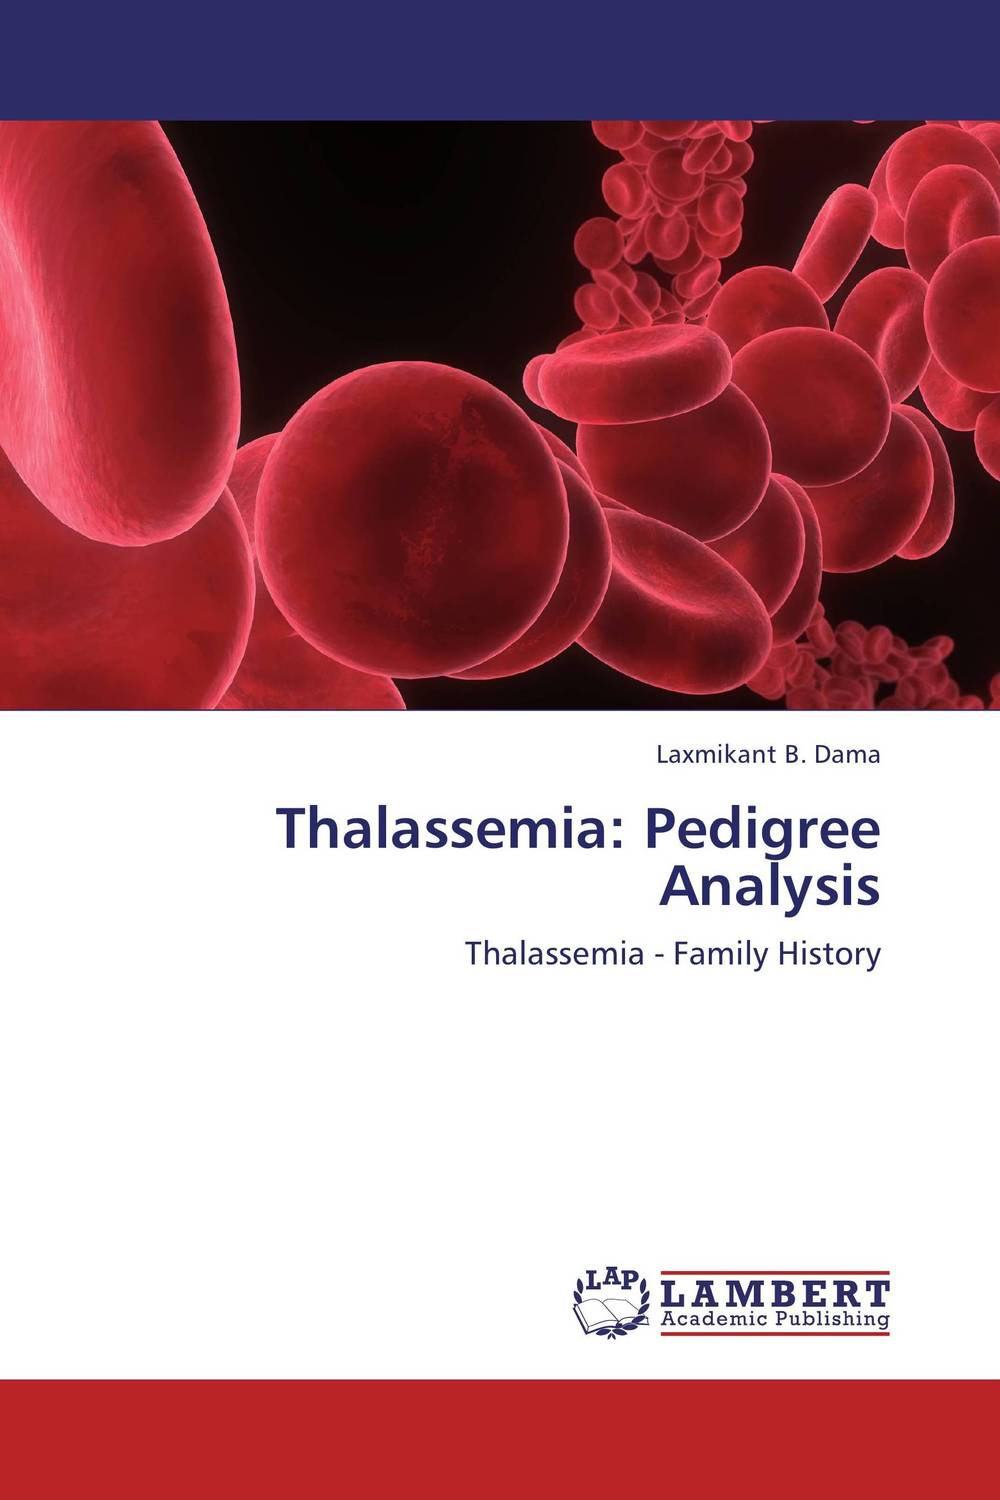 Thalassemia: Pedigree Analysis laxmikant b dama thalassemia pedigree analysis